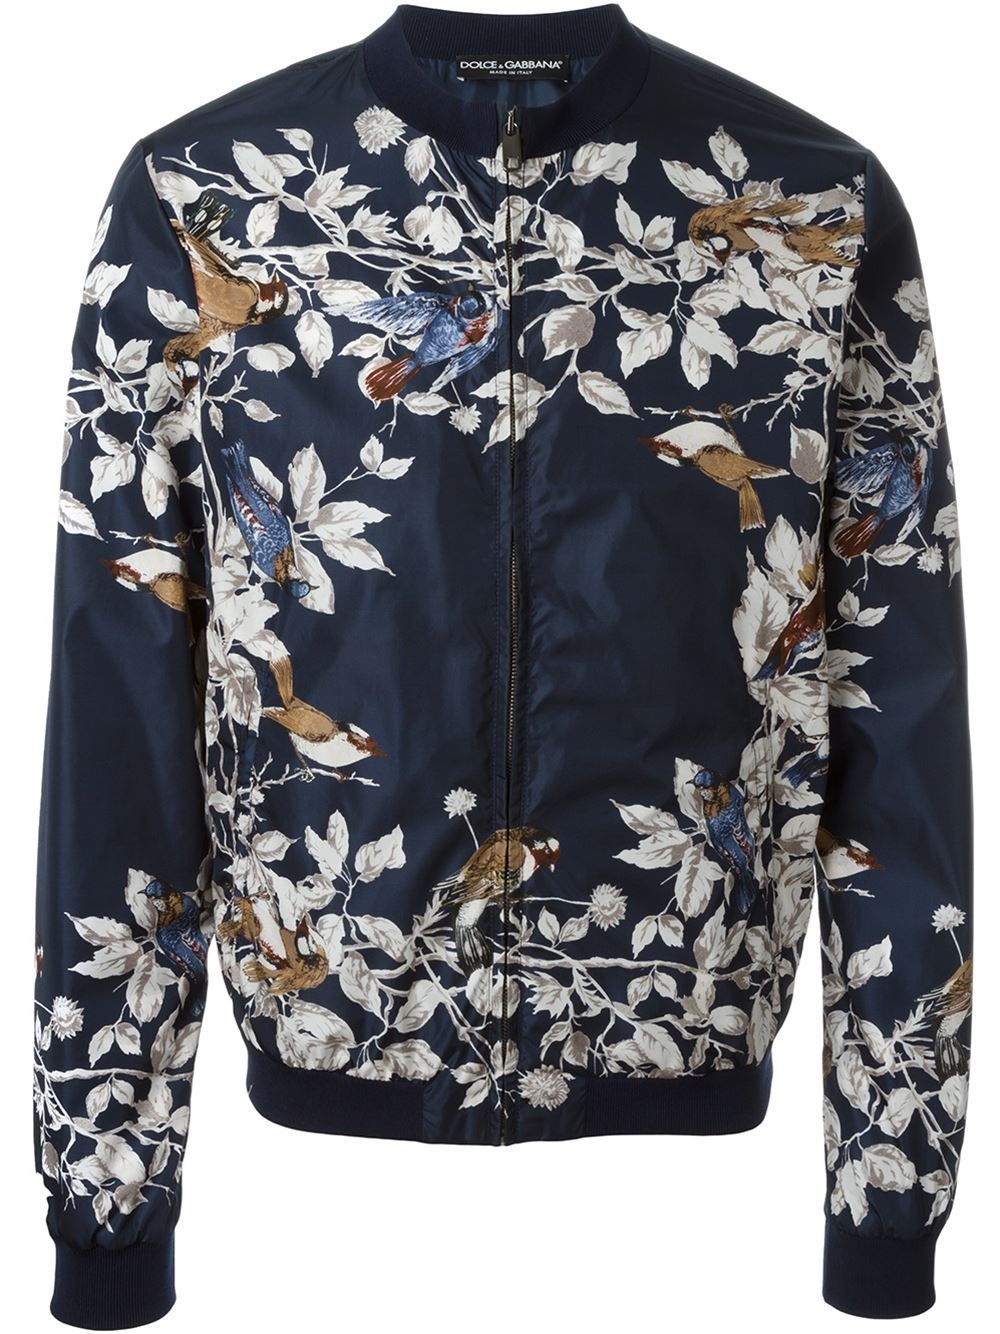 26987bd4216 Dolce & Gabbana bird print bomber jacket | Men's Fashion | Printed ...